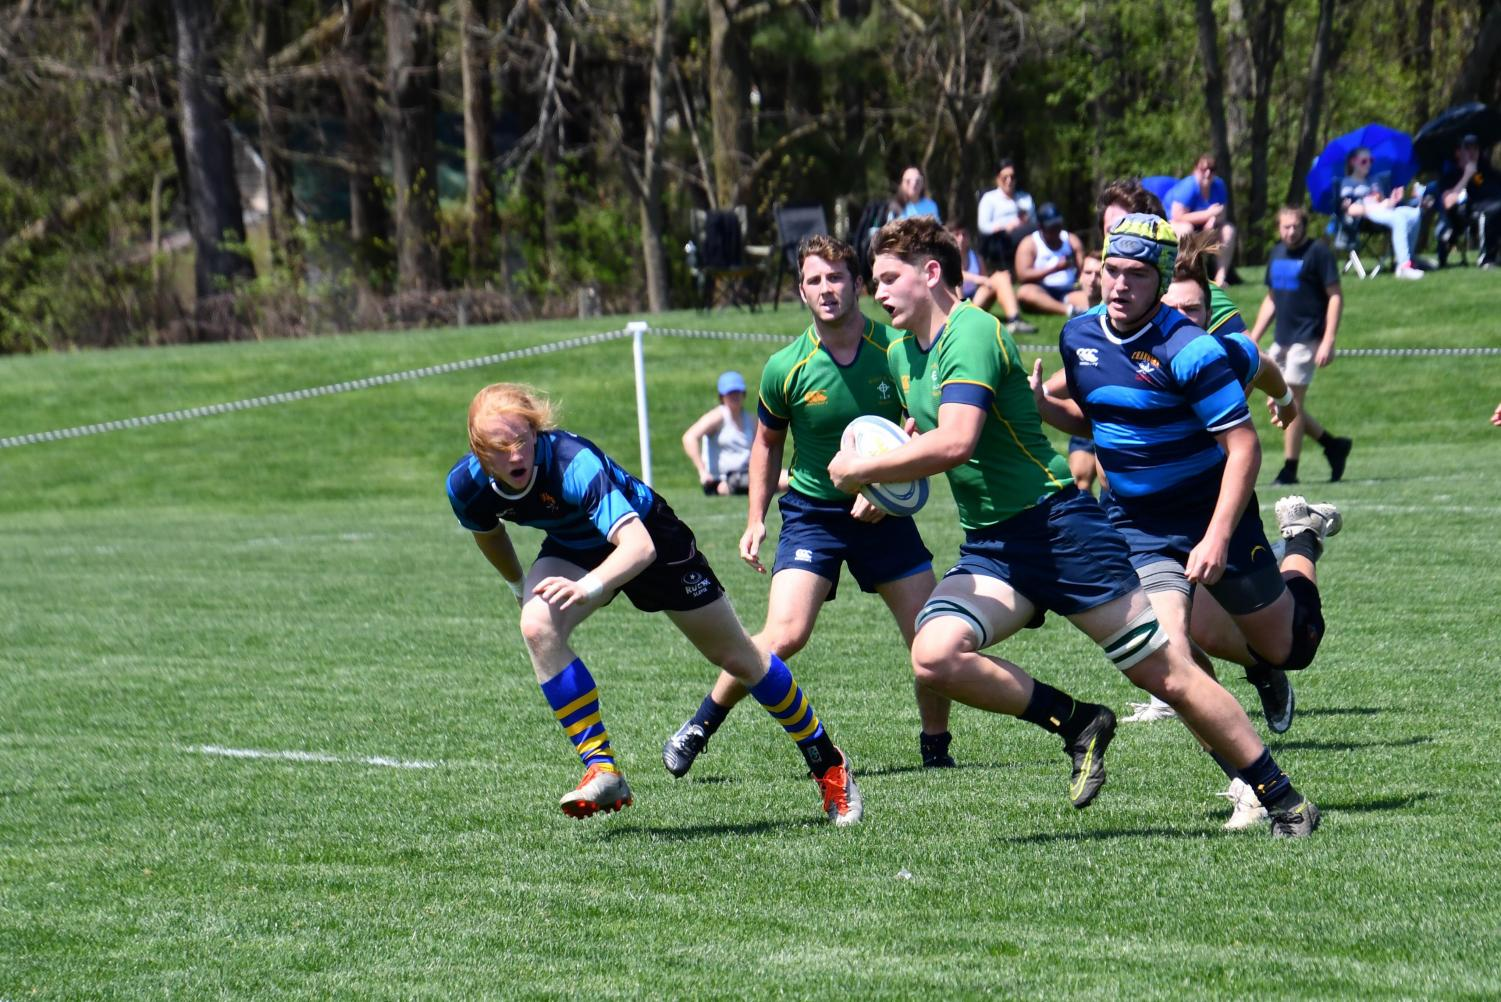 The Royal Irish rugby team, in action last season, plays in a national tournament in Salt Lake City May 16-18.